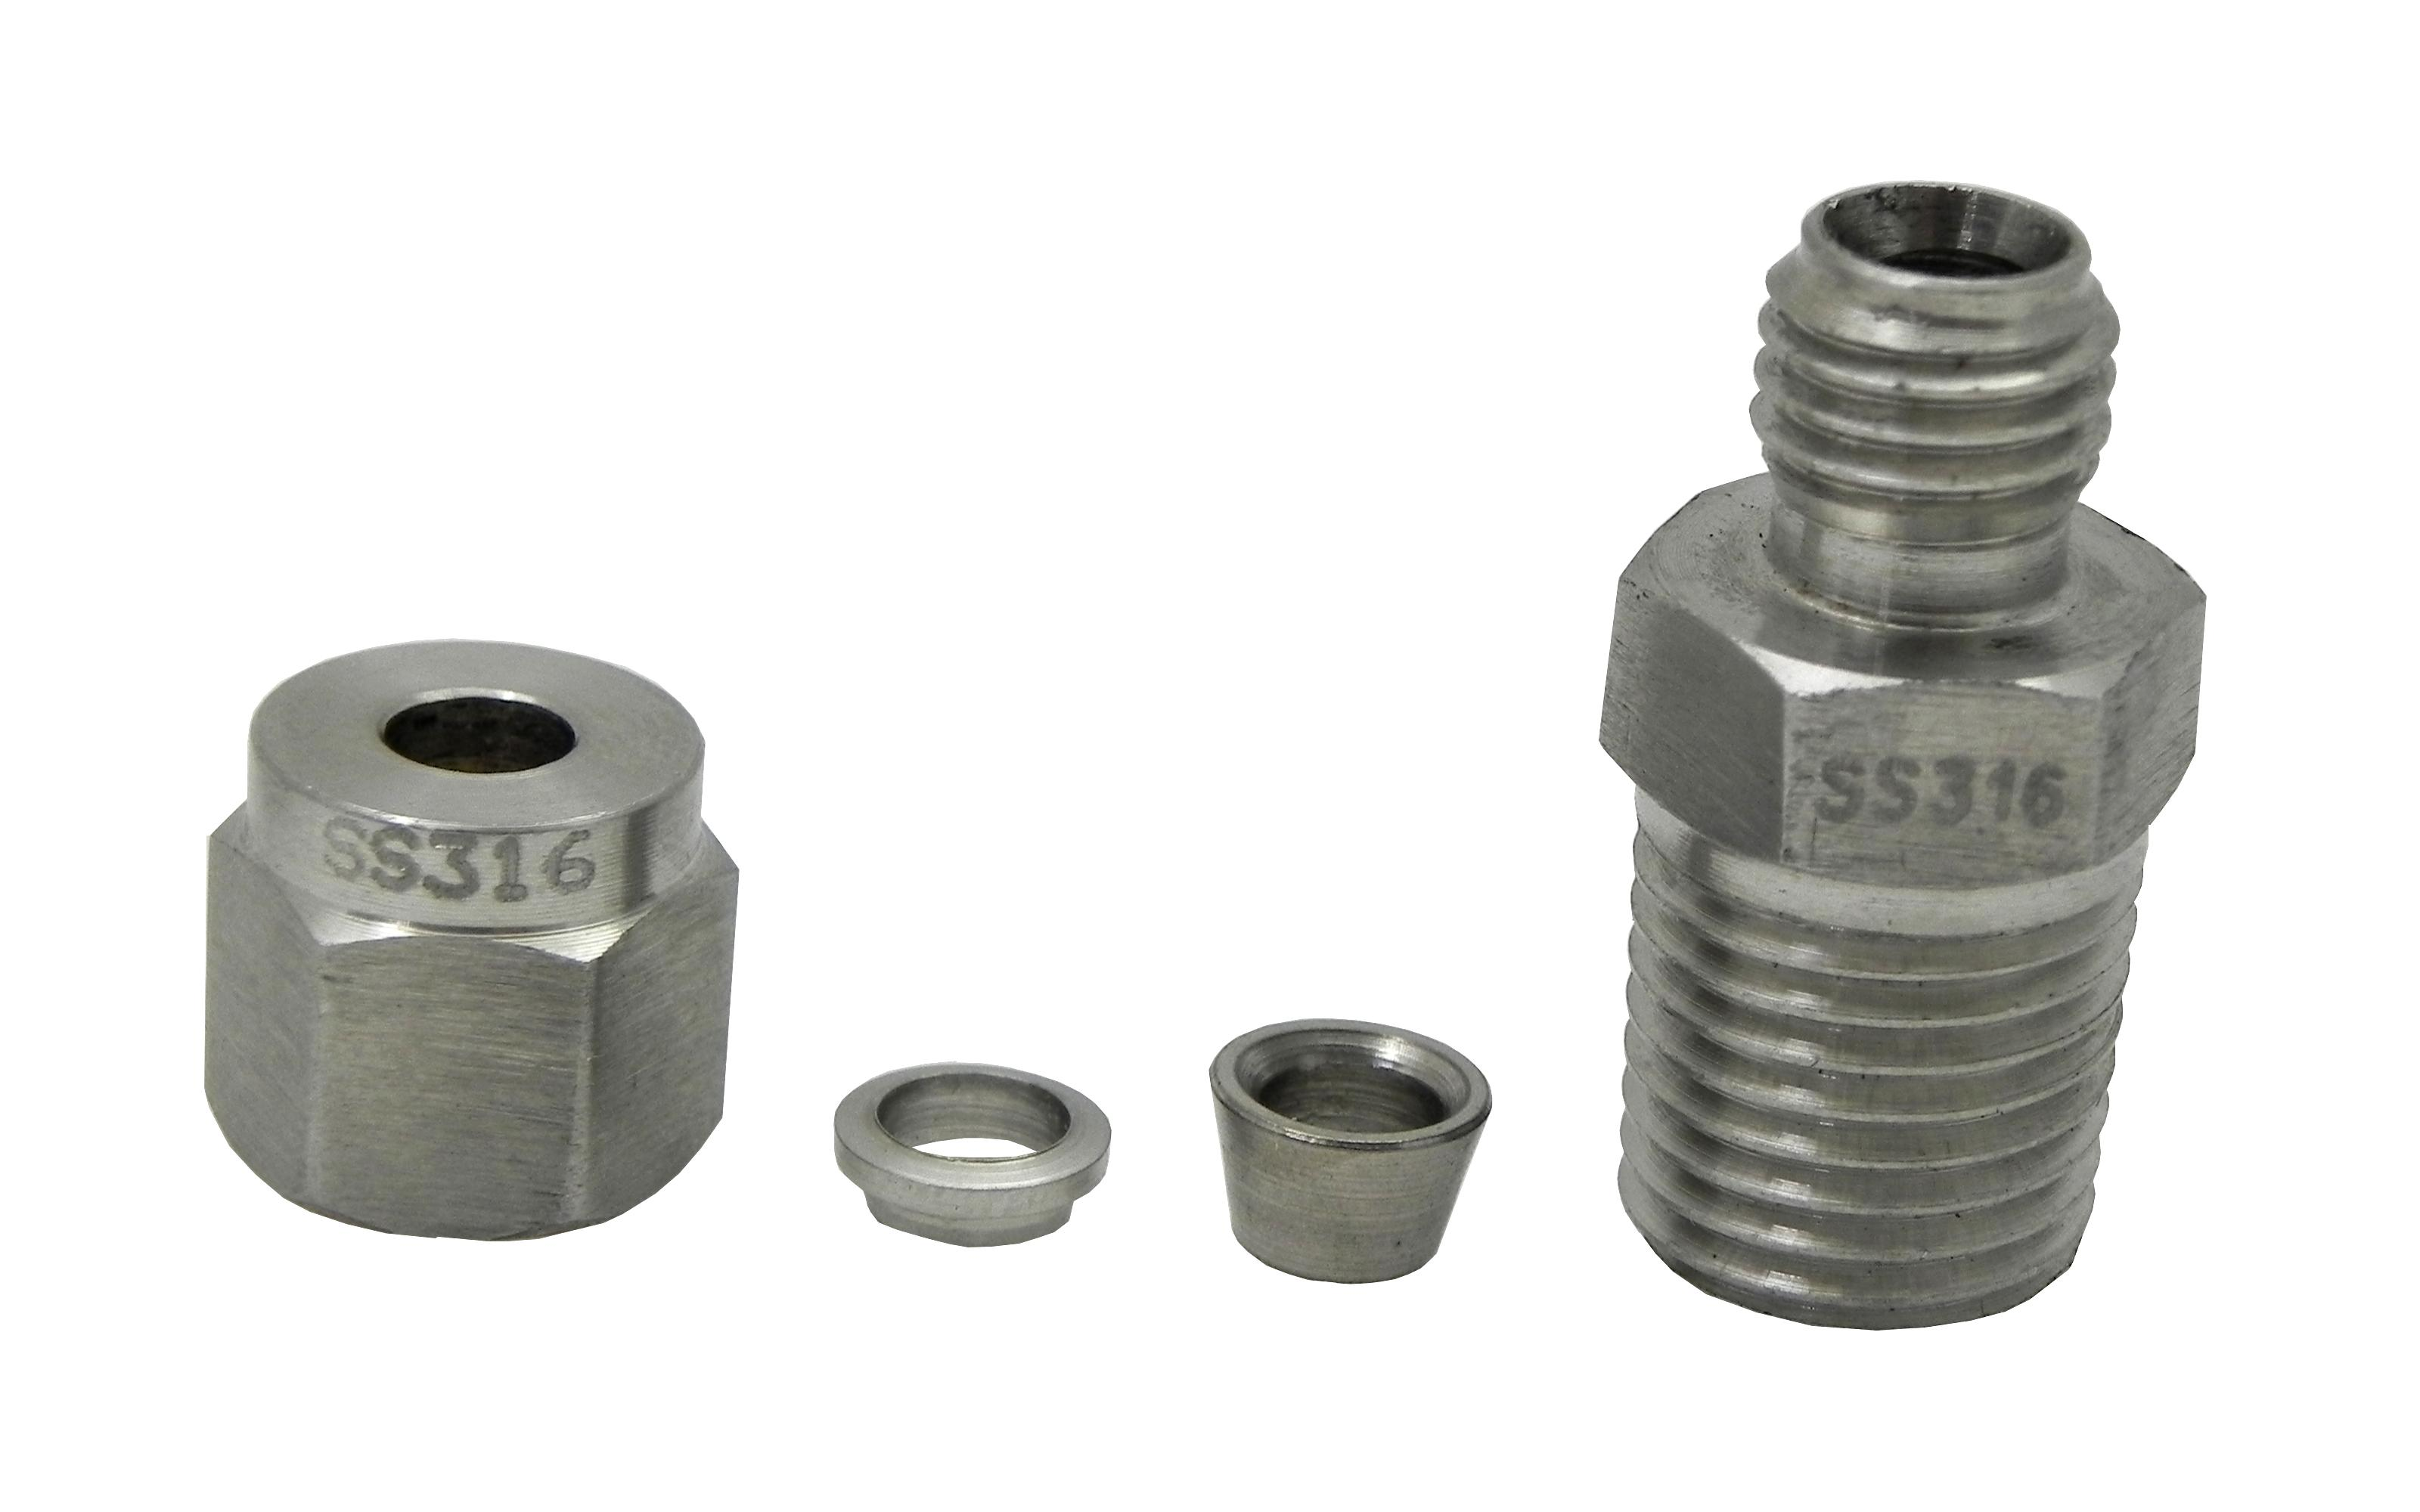 Thermocouple compression fitting adapters quot npt